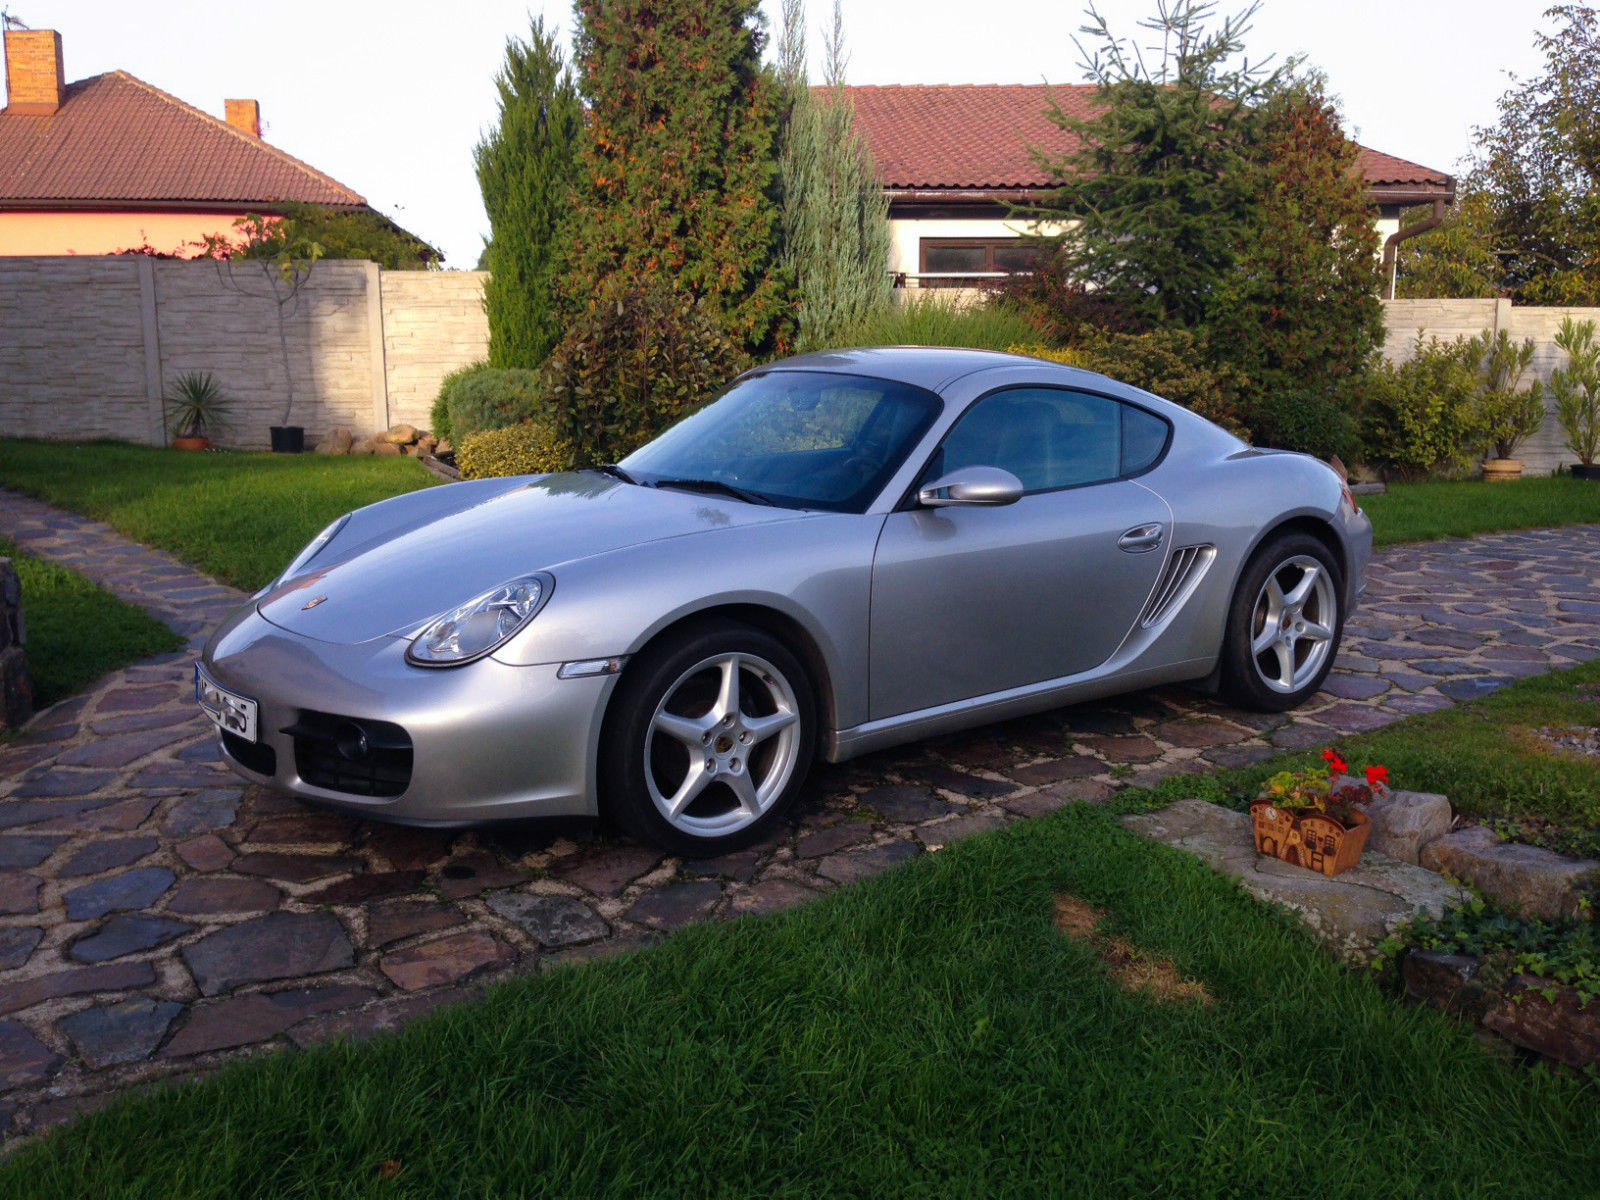 2006 Porsche Cayman Sport Edition 2 7 For Sale